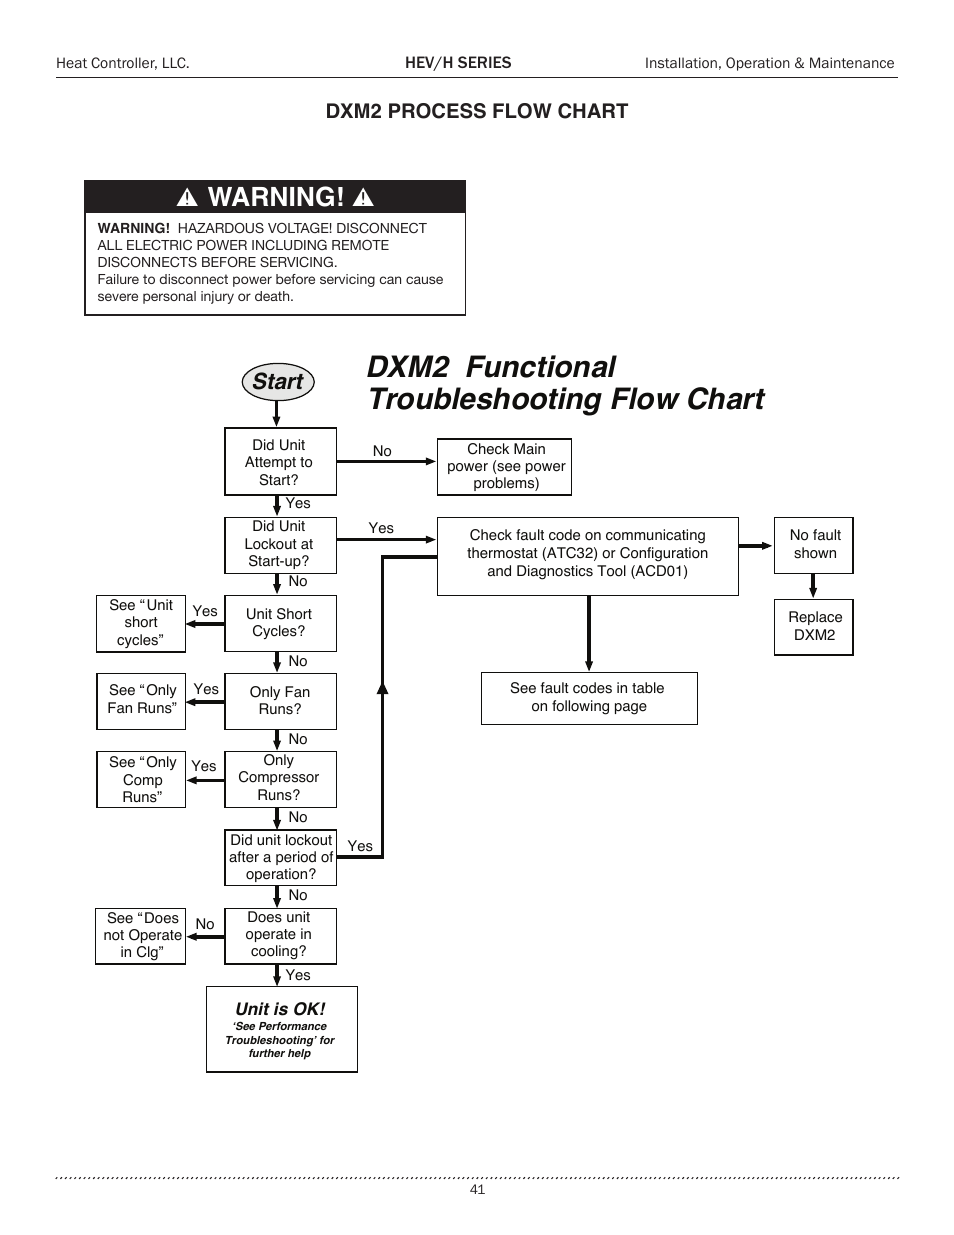 Dxm2 Functional Troubleshooting Flow Chart Warning Start Comfort Process Diagram Yes No Aire Heh Series 2 To 5 Tons User Manual Page 41 46